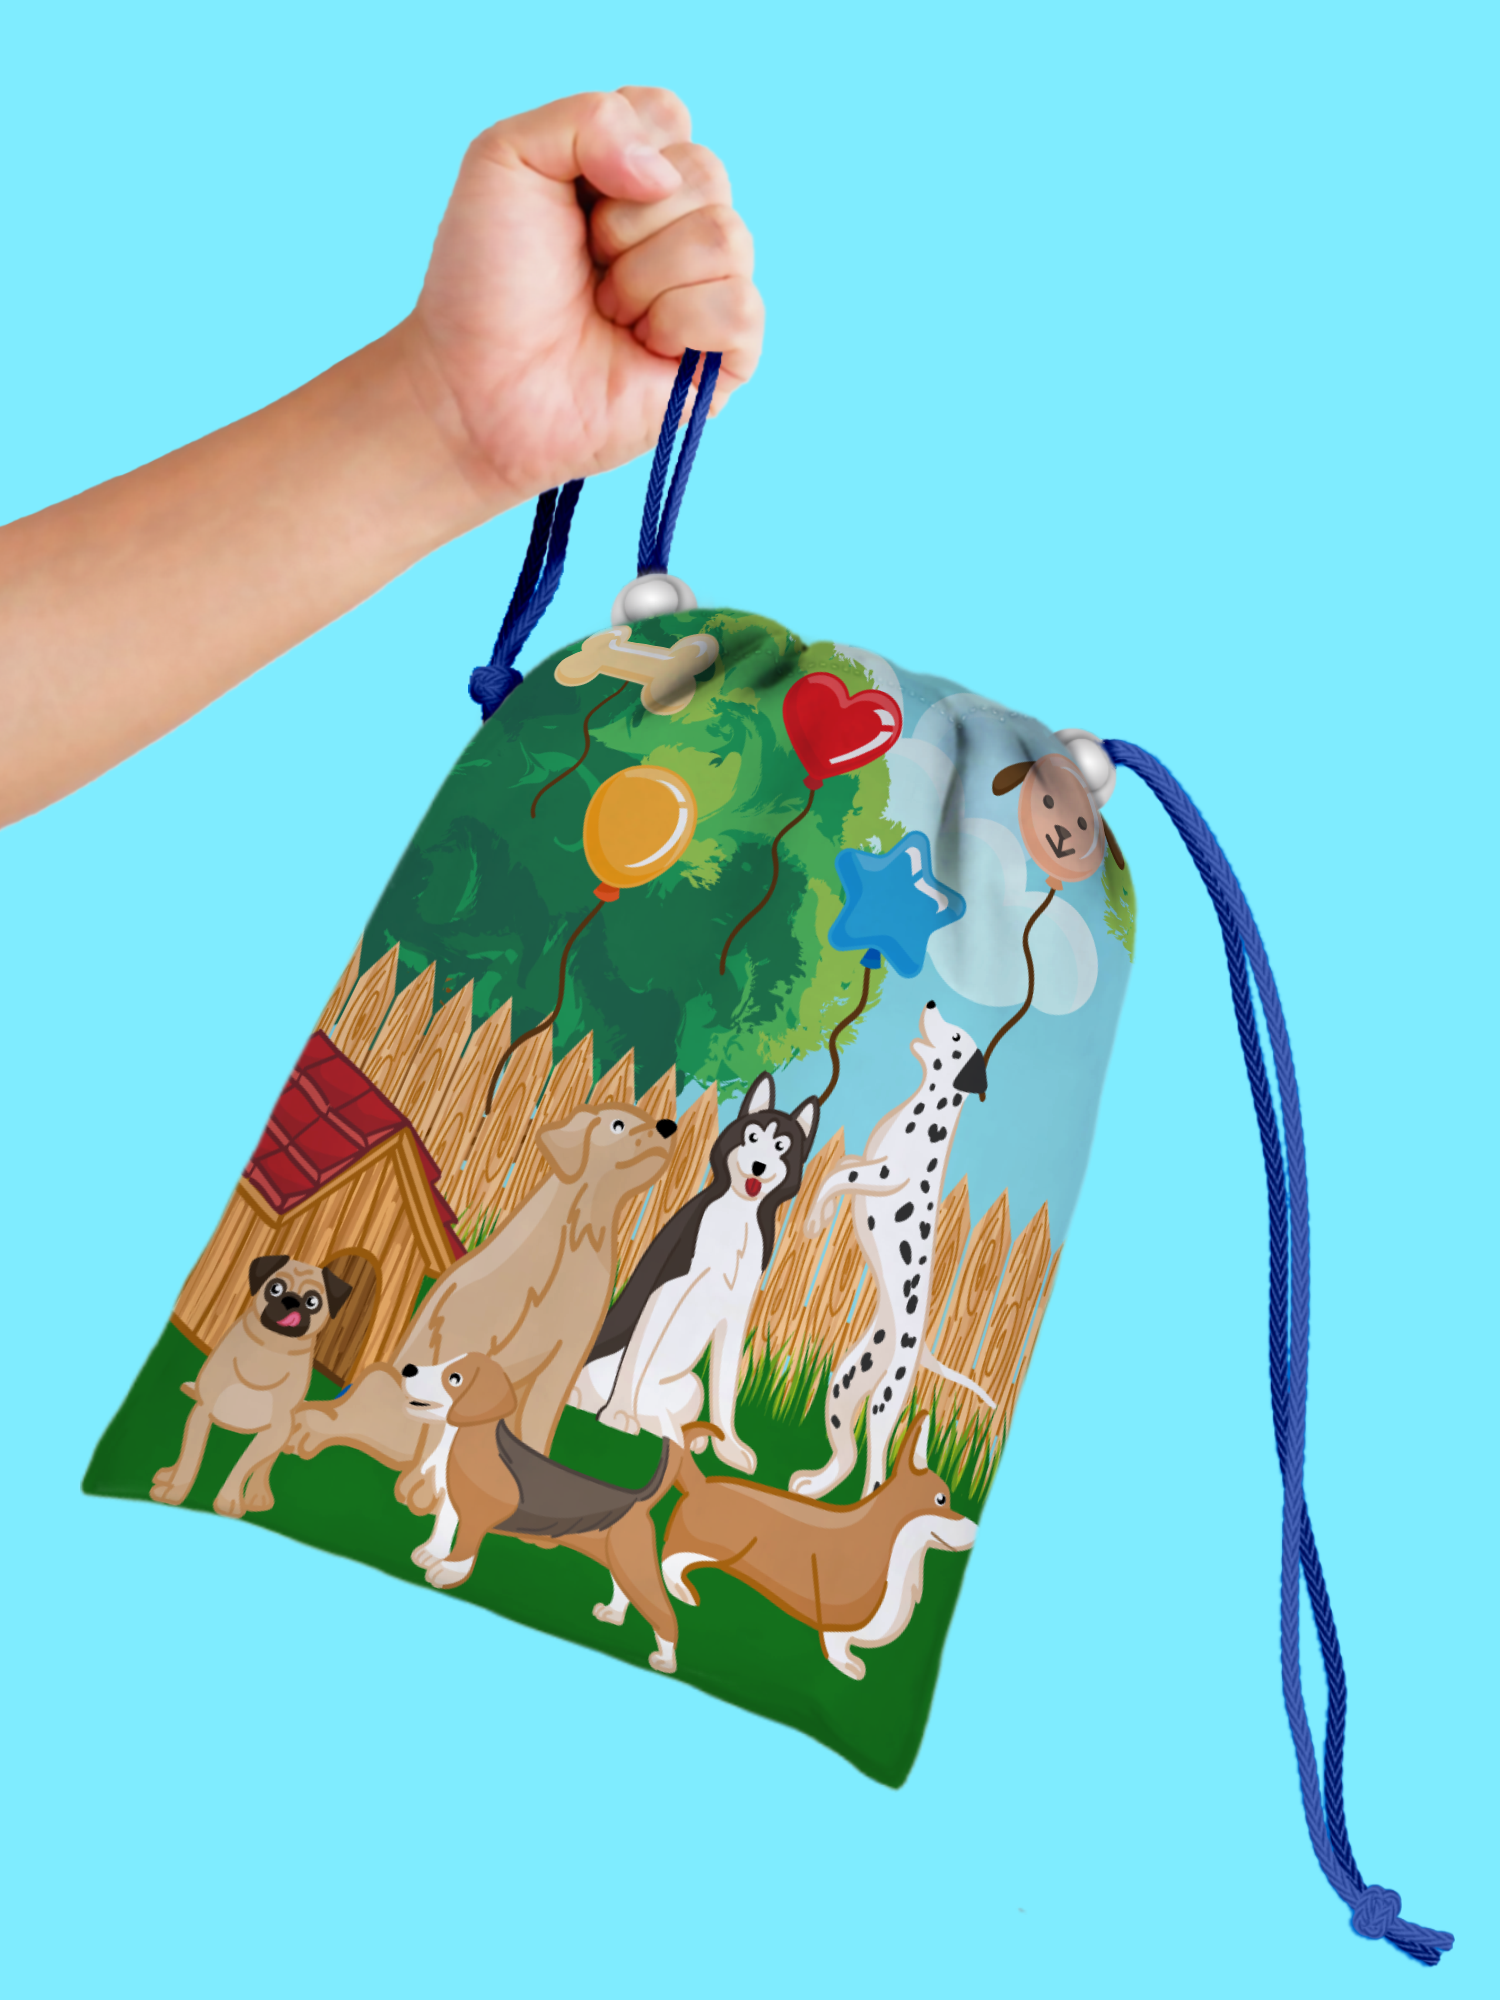 Puppy Dog Drawstring Tote Bag (10 Pack) - BirthdayGalore.com